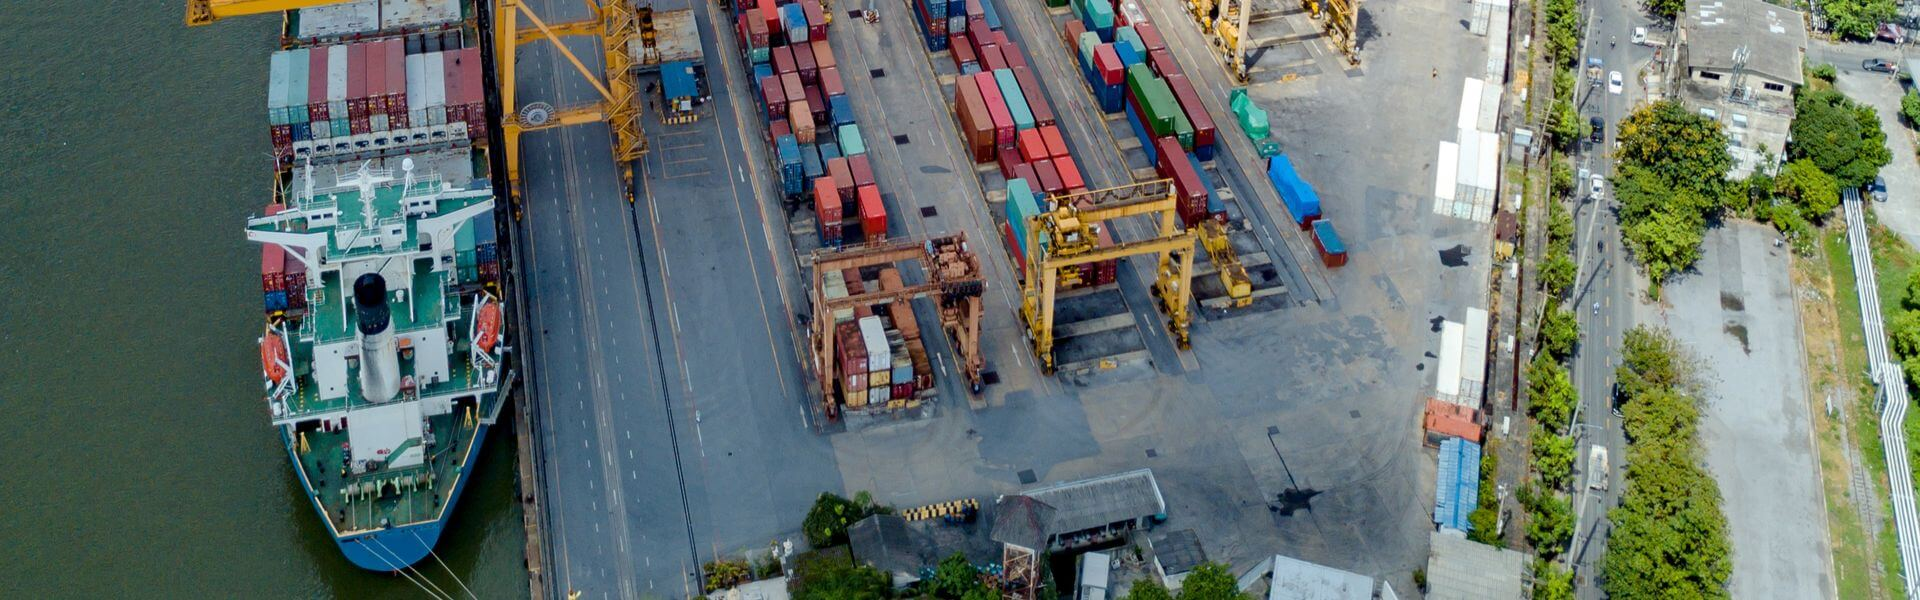 Supply Chain – The way forward in unpredictable times